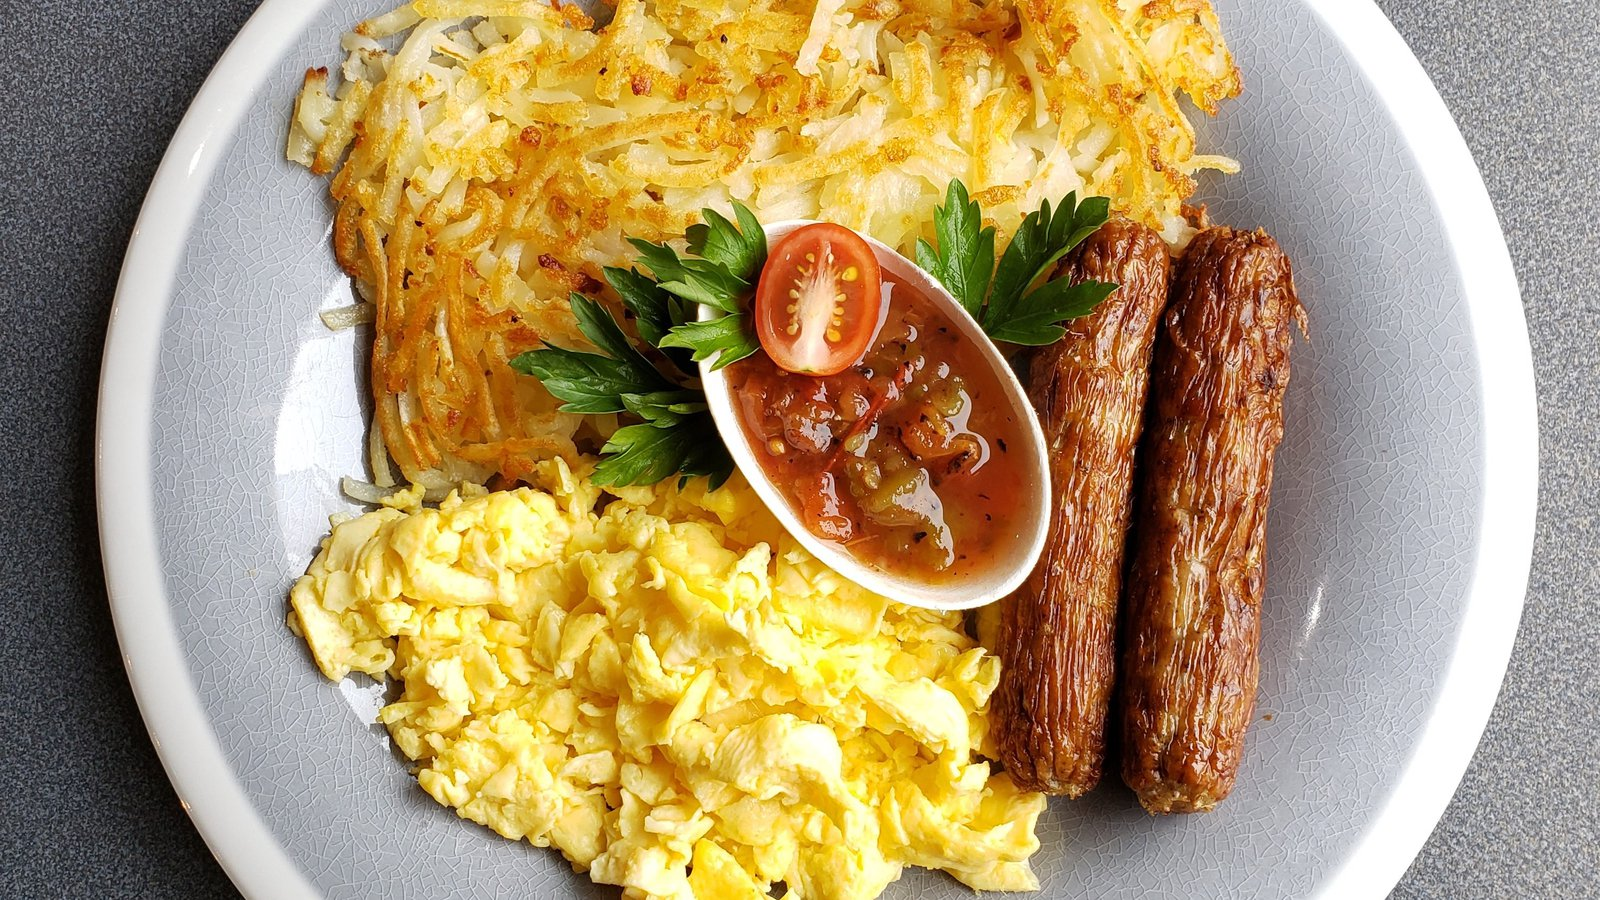 Scrambled eggs, sausage, hash browns